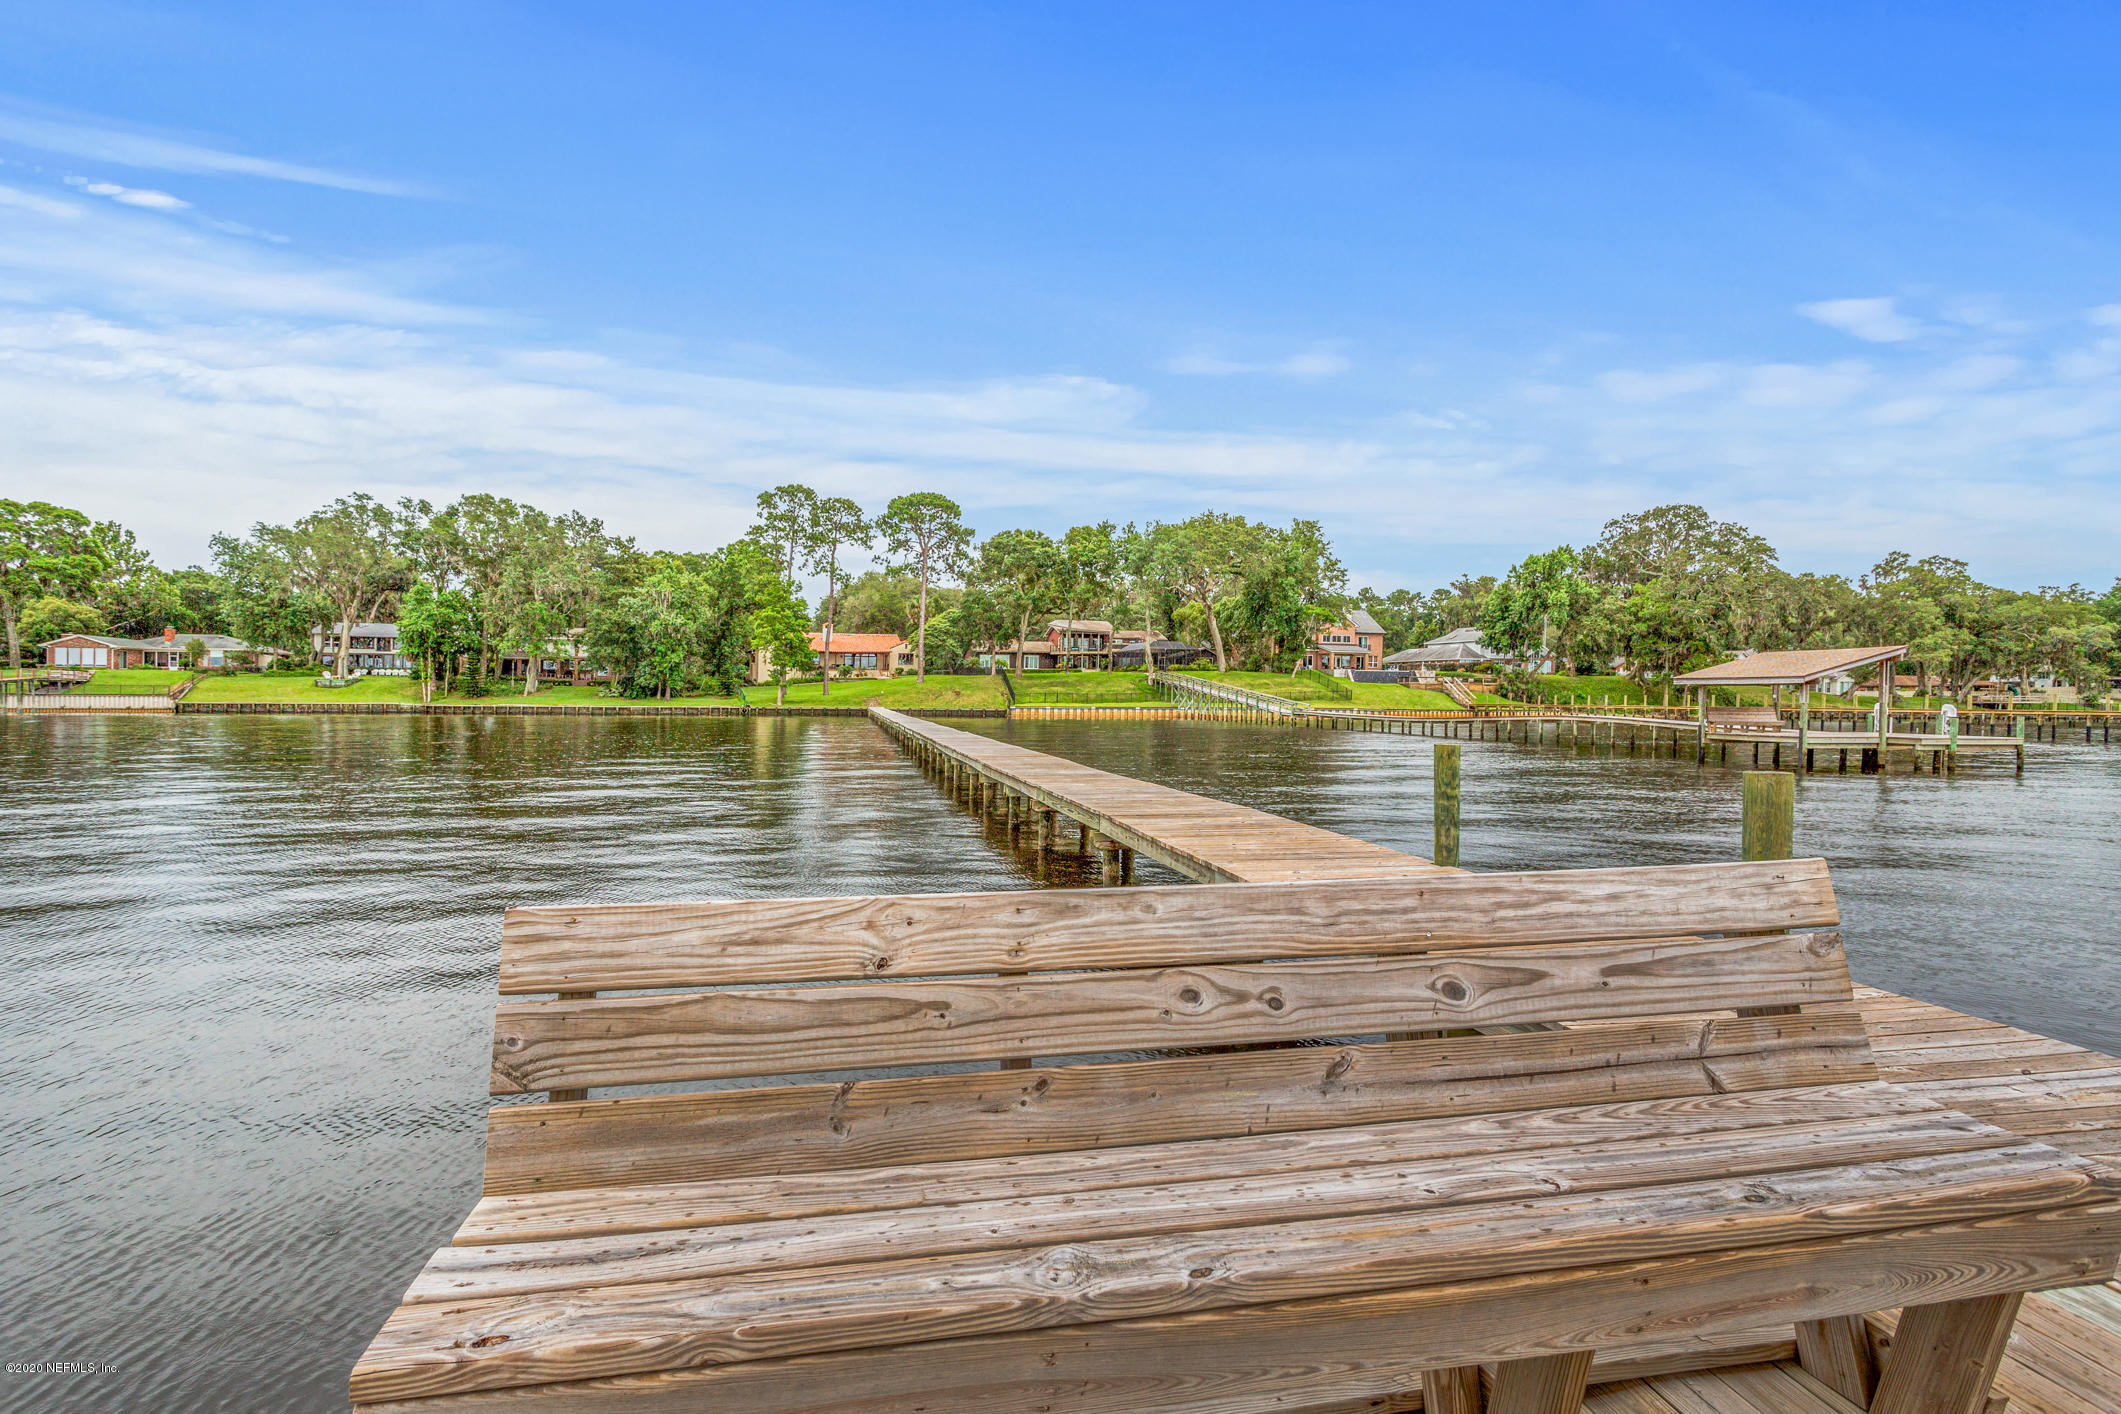 3077 ISSER, JACKSONVILLE, FLORIDA 32257, 4 Bedrooms Bedrooms, ,3 BathroomsBathrooms,Residential,For sale,ISSER,1057856